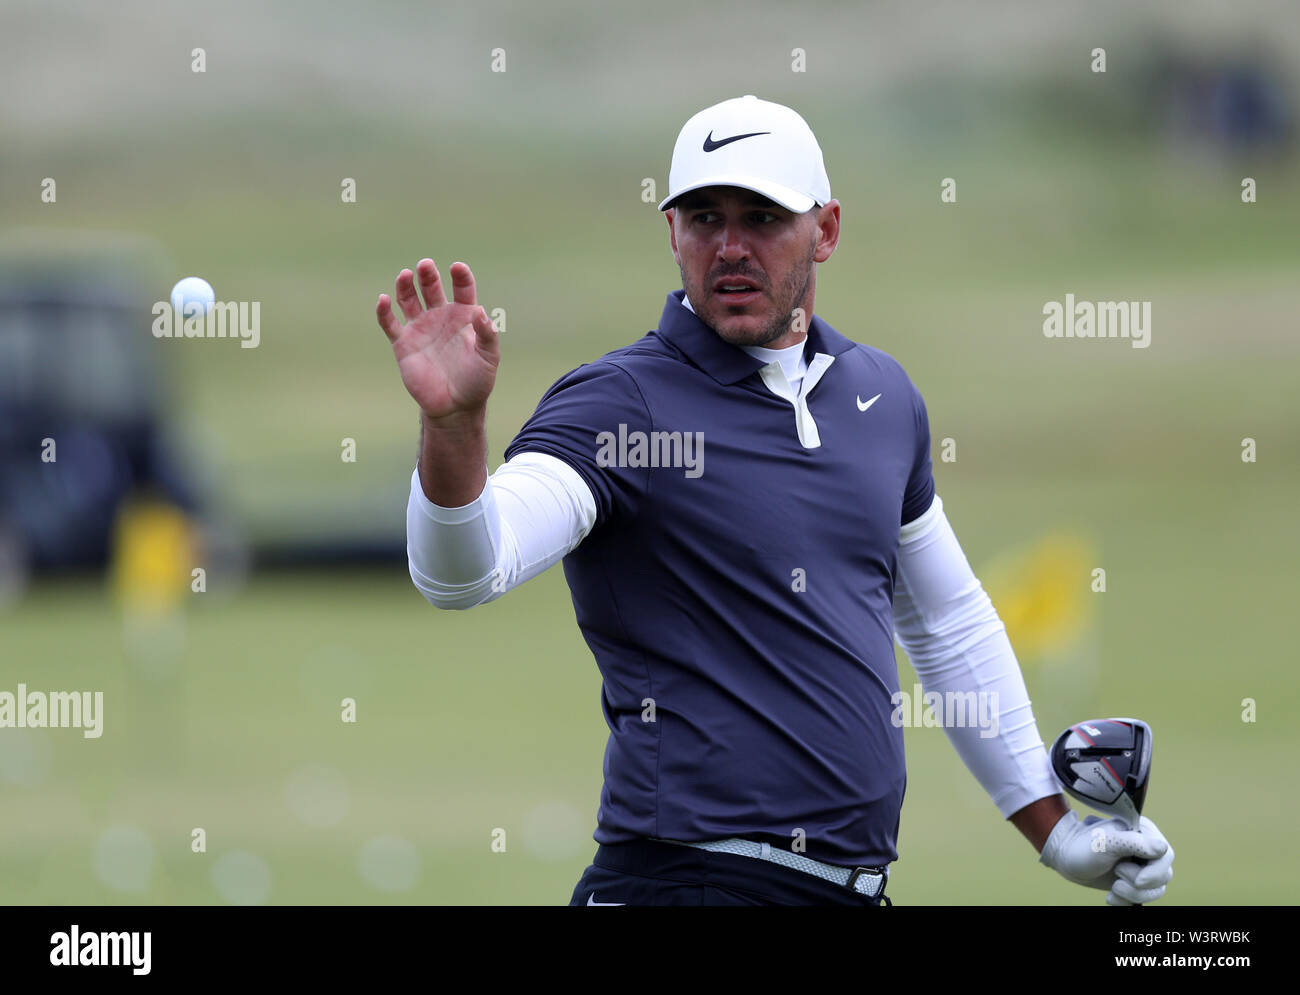 Portrush, Country Antrim, Northern Ireland. 17th July, 2019. The 148th Open Golf Championship, Royal Portrush Golf Club, Practice day; Brooks Koepka (USA) catches a ball tossed to him by his caddie on the practice range Credit: Action Plus Sports Images/Alamy Live News Stock Photo